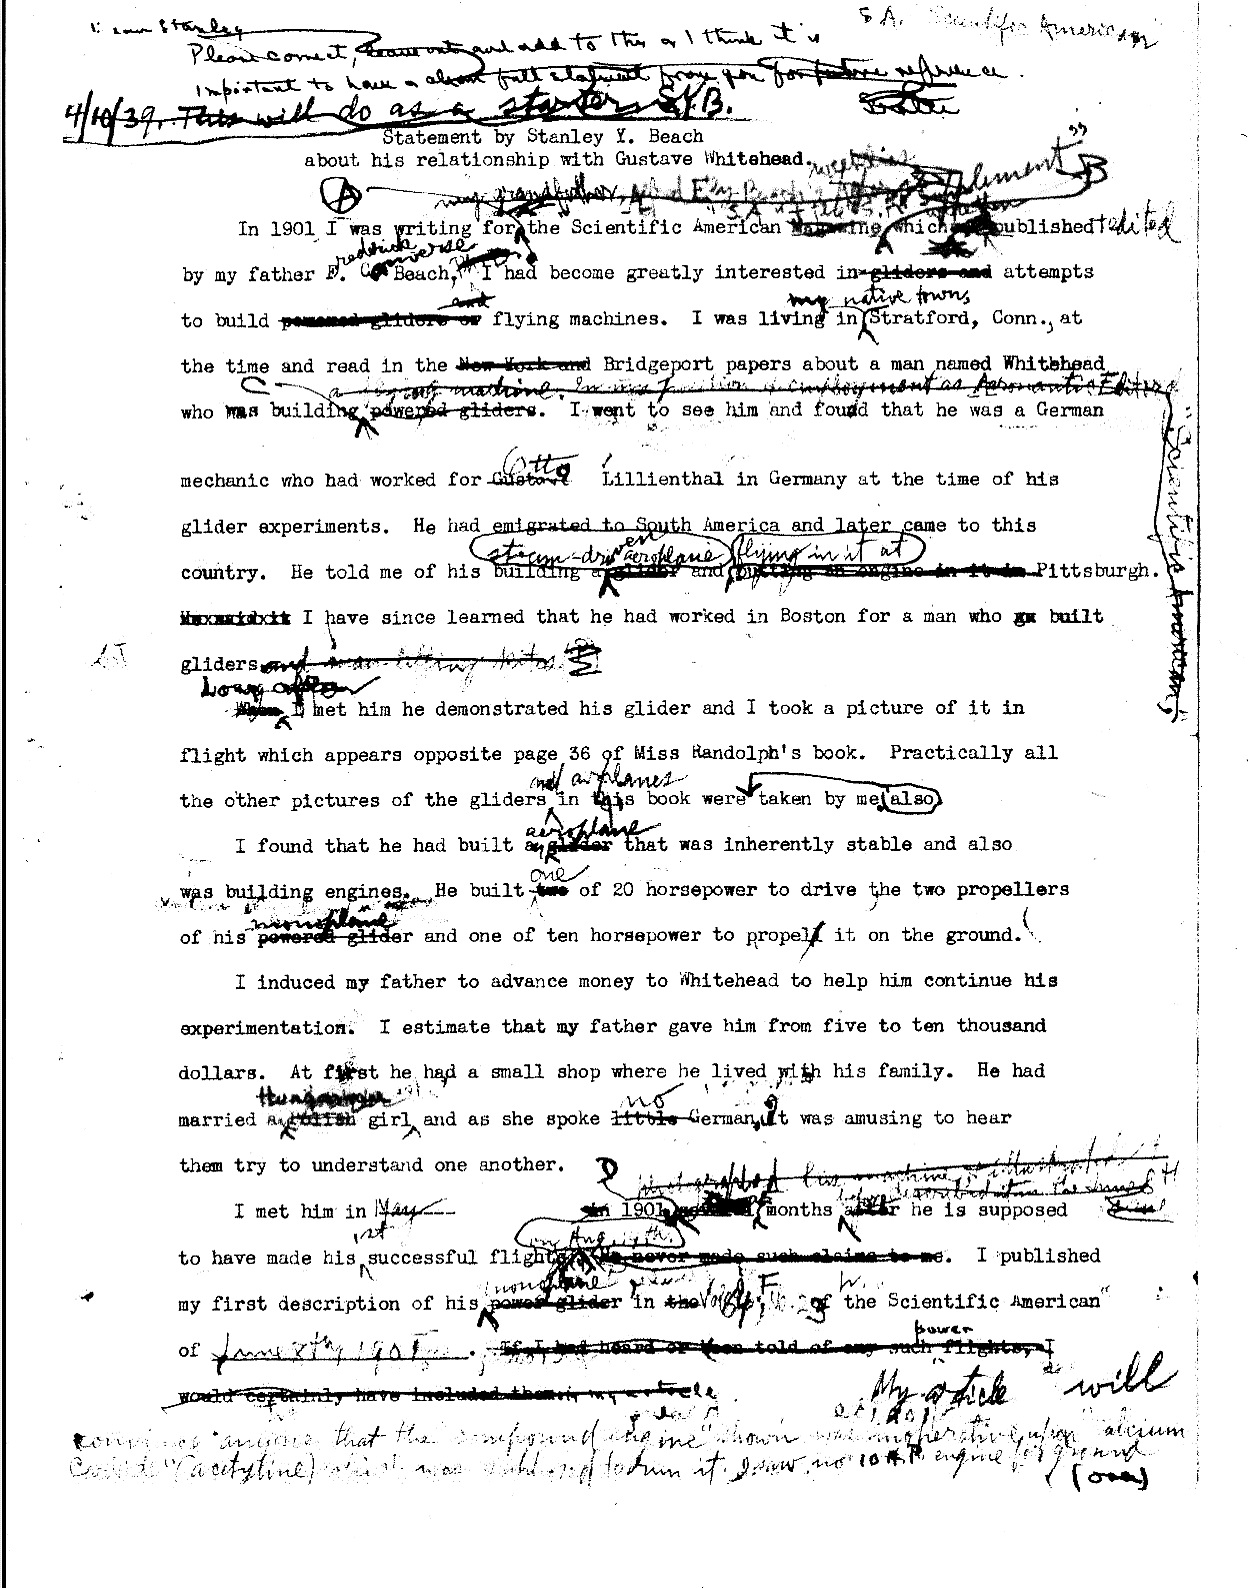 Beach Whitehead Statement Draft 1 (p. 1 of 6) with heavy edits including Gardner's.